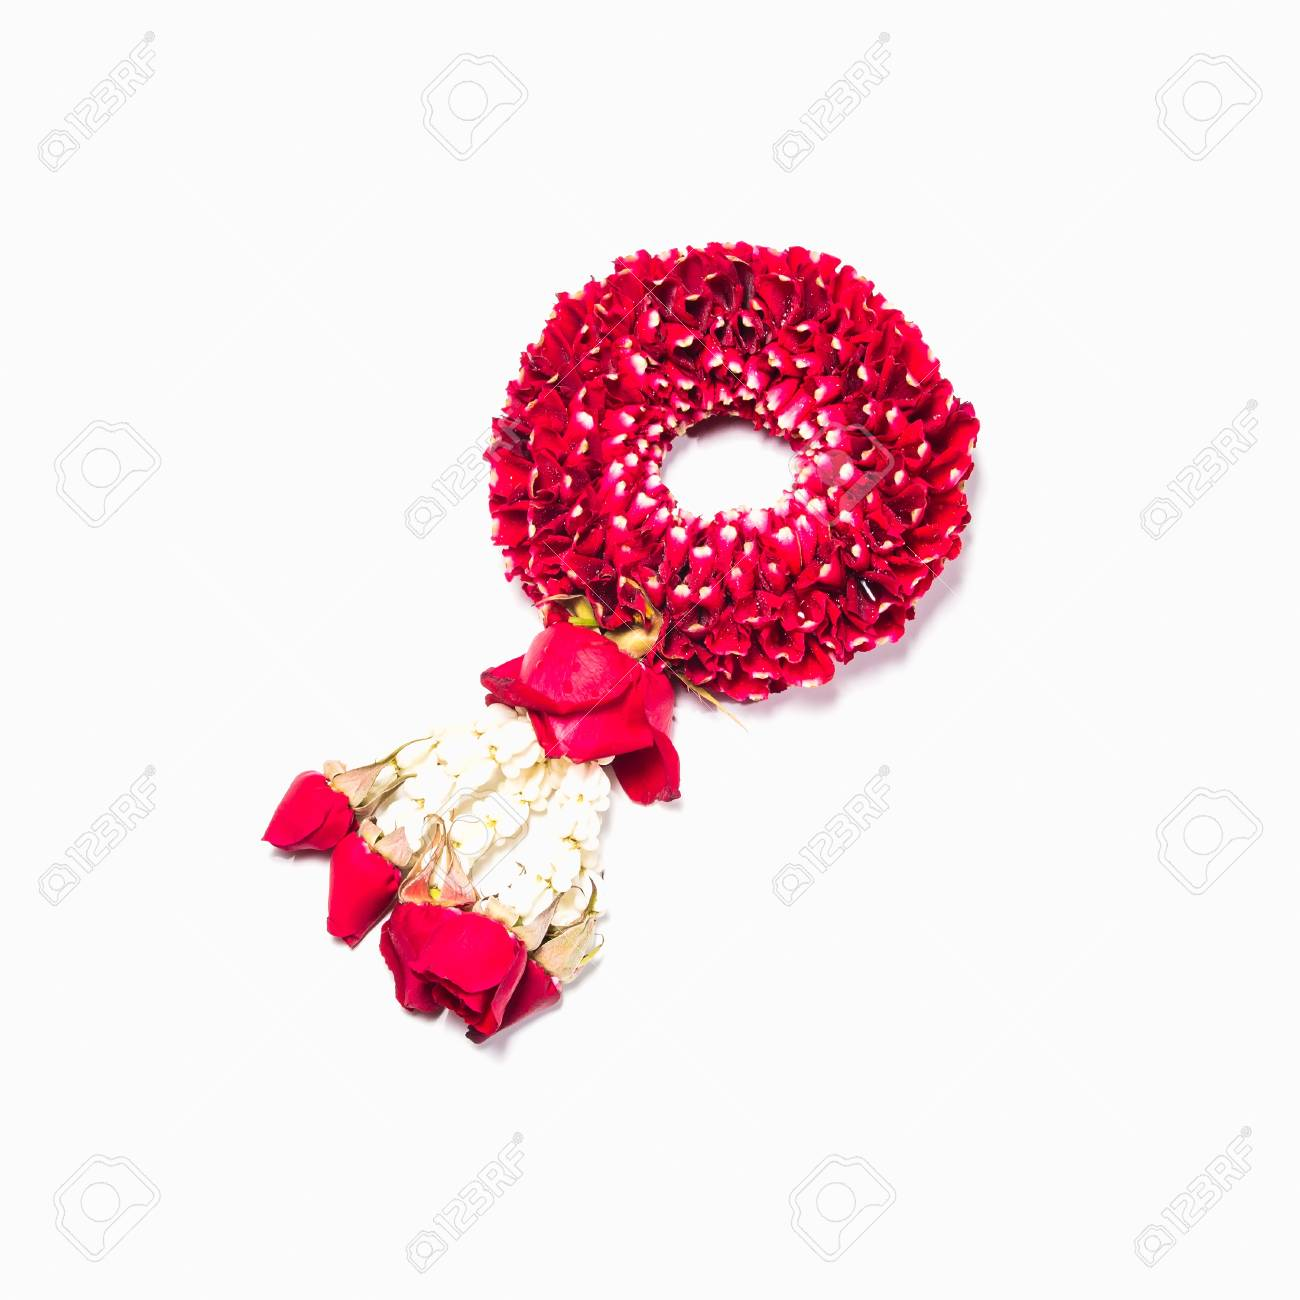 Thai style garland made of rose petals isolated on white background Stock Photo - 17561639